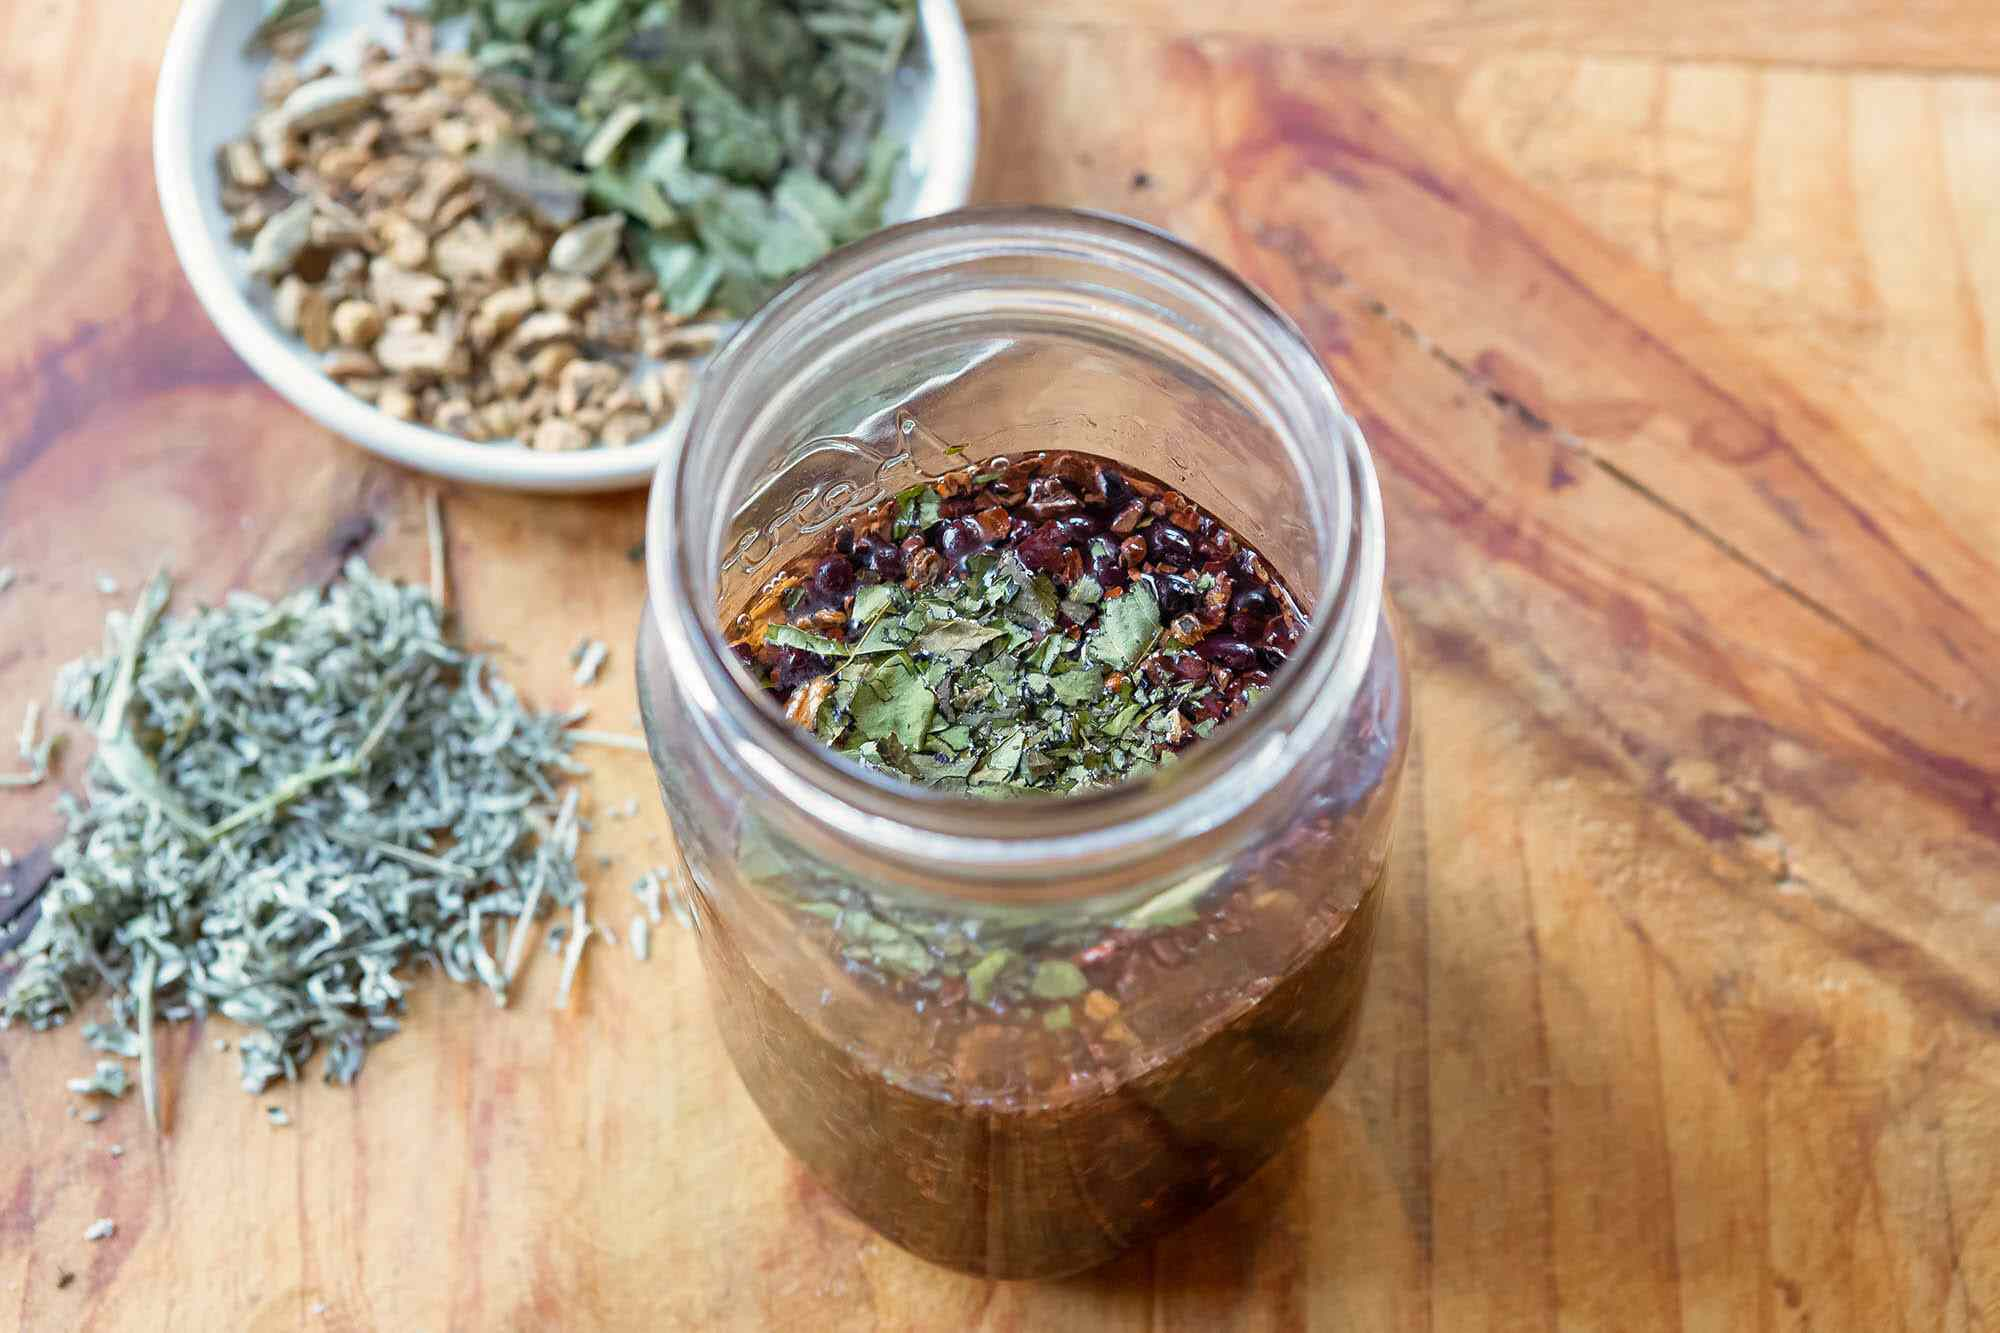 A mason jar with herbs and roots for homemade bitters.